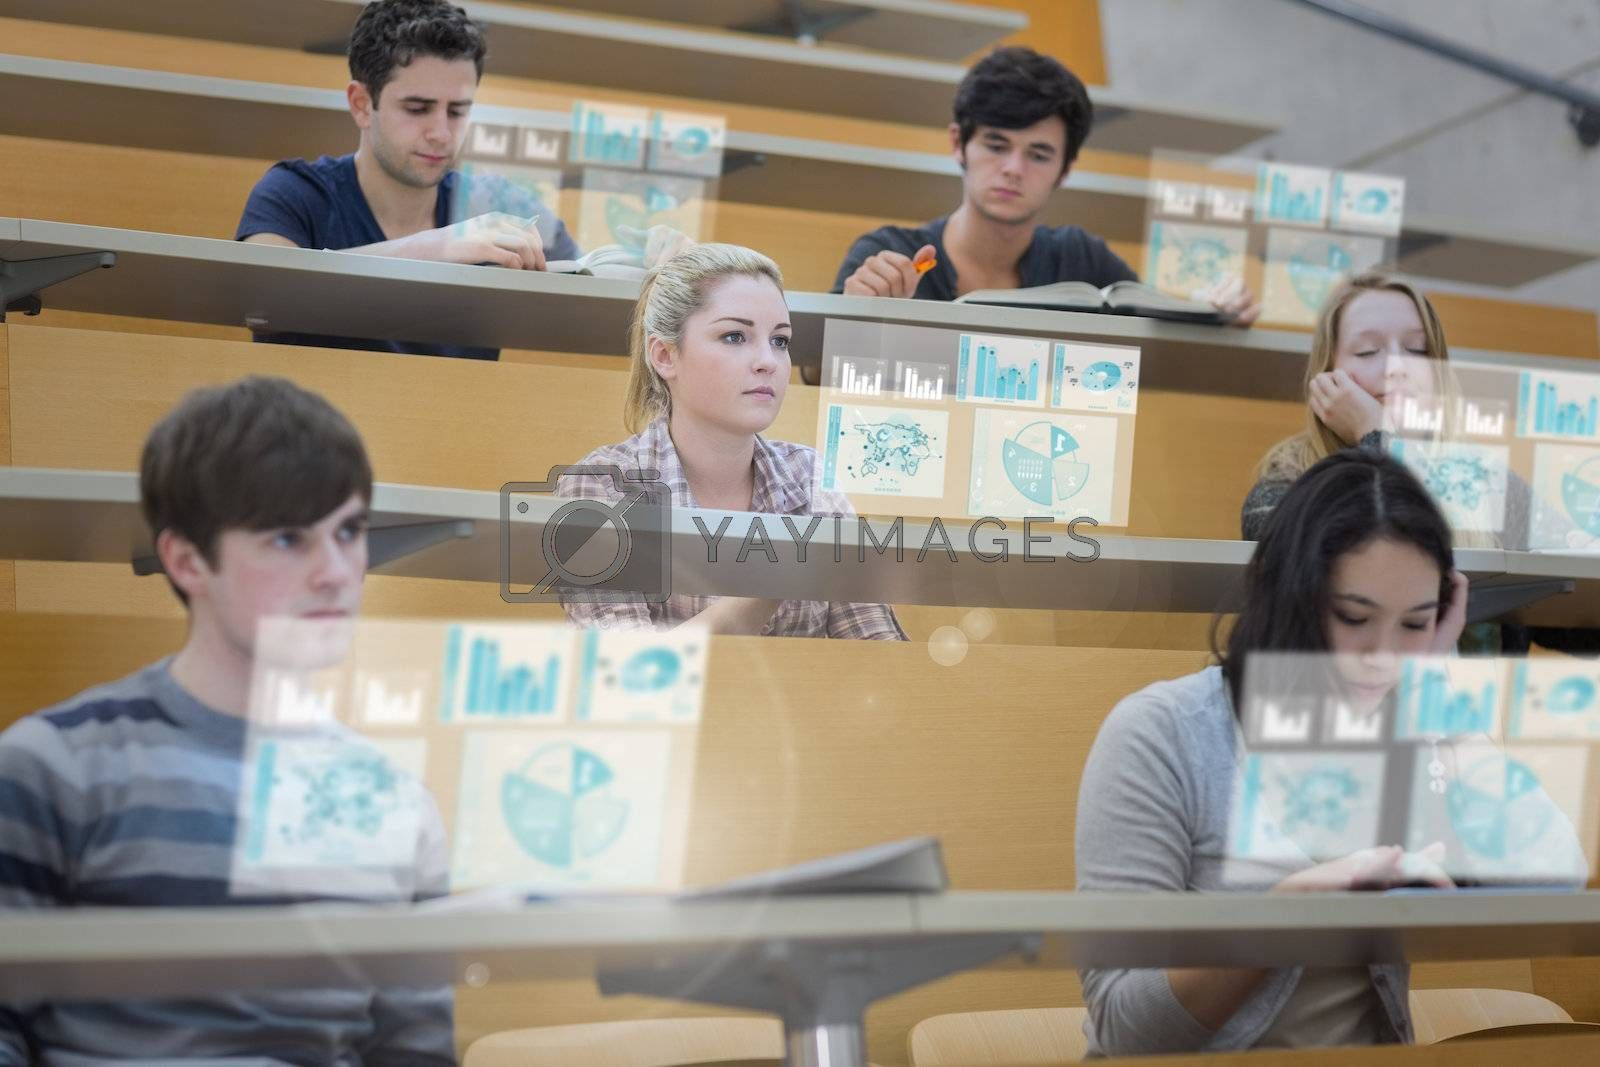 Focused students in lecture hall working on their futuristic tablet by Wavebreakmedia